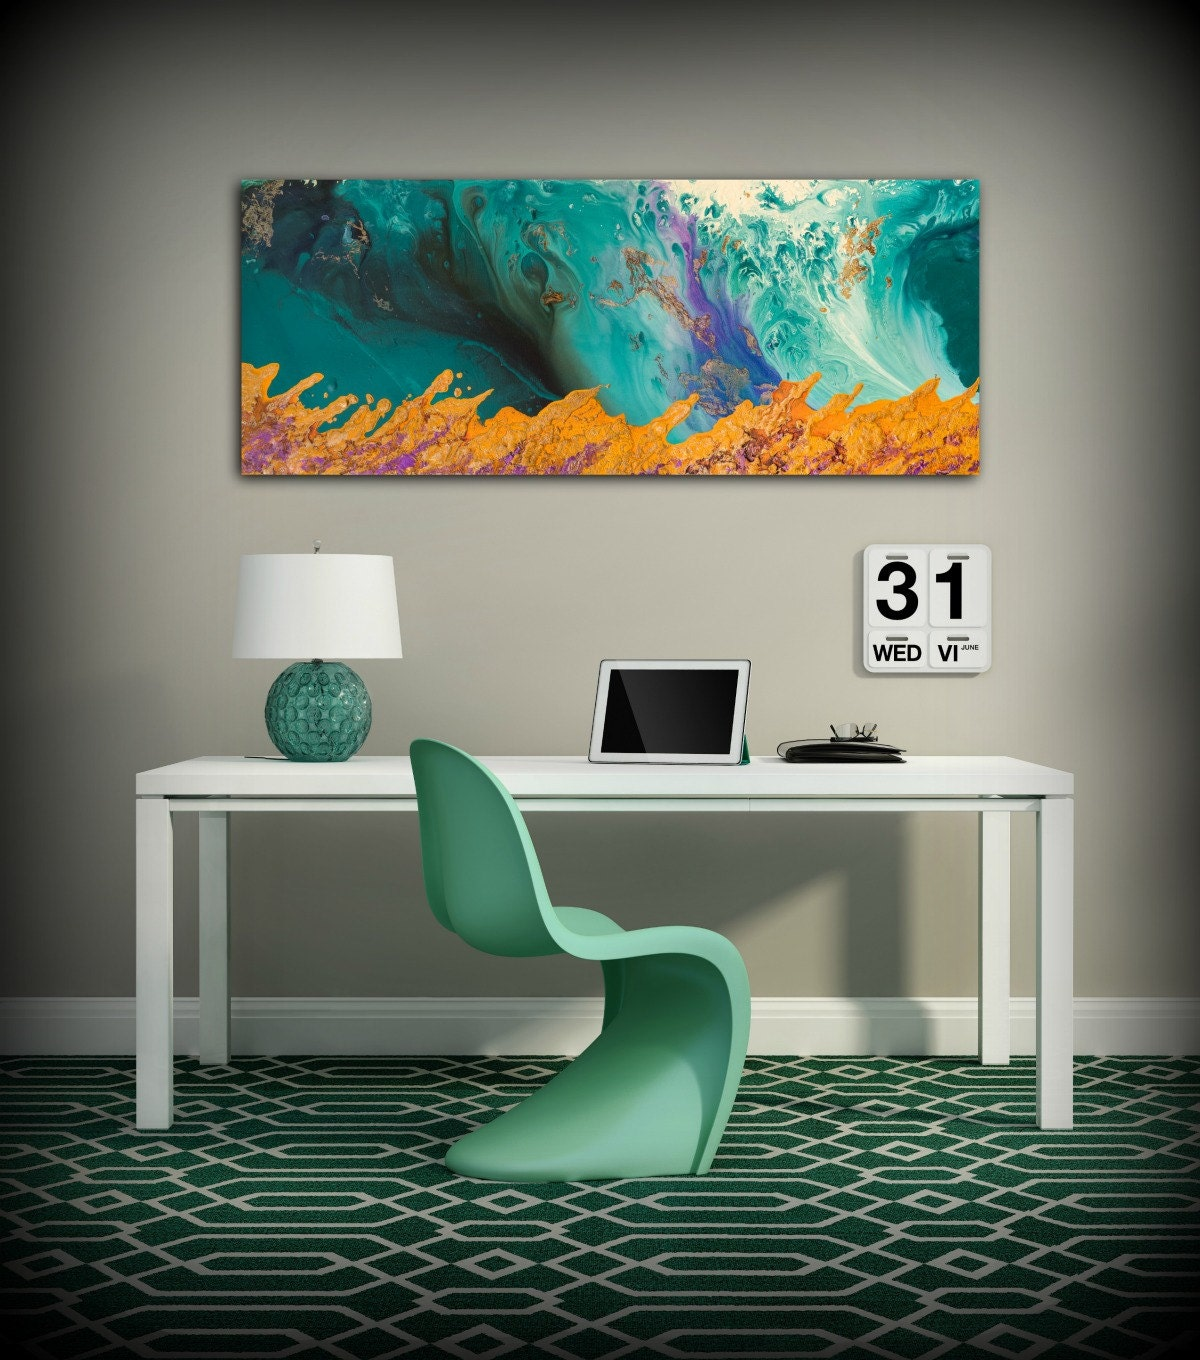 canvas print wall decor large abstract wall art teal and orange modern art office wall decor. Black Bedroom Furniture Sets. Home Design Ideas